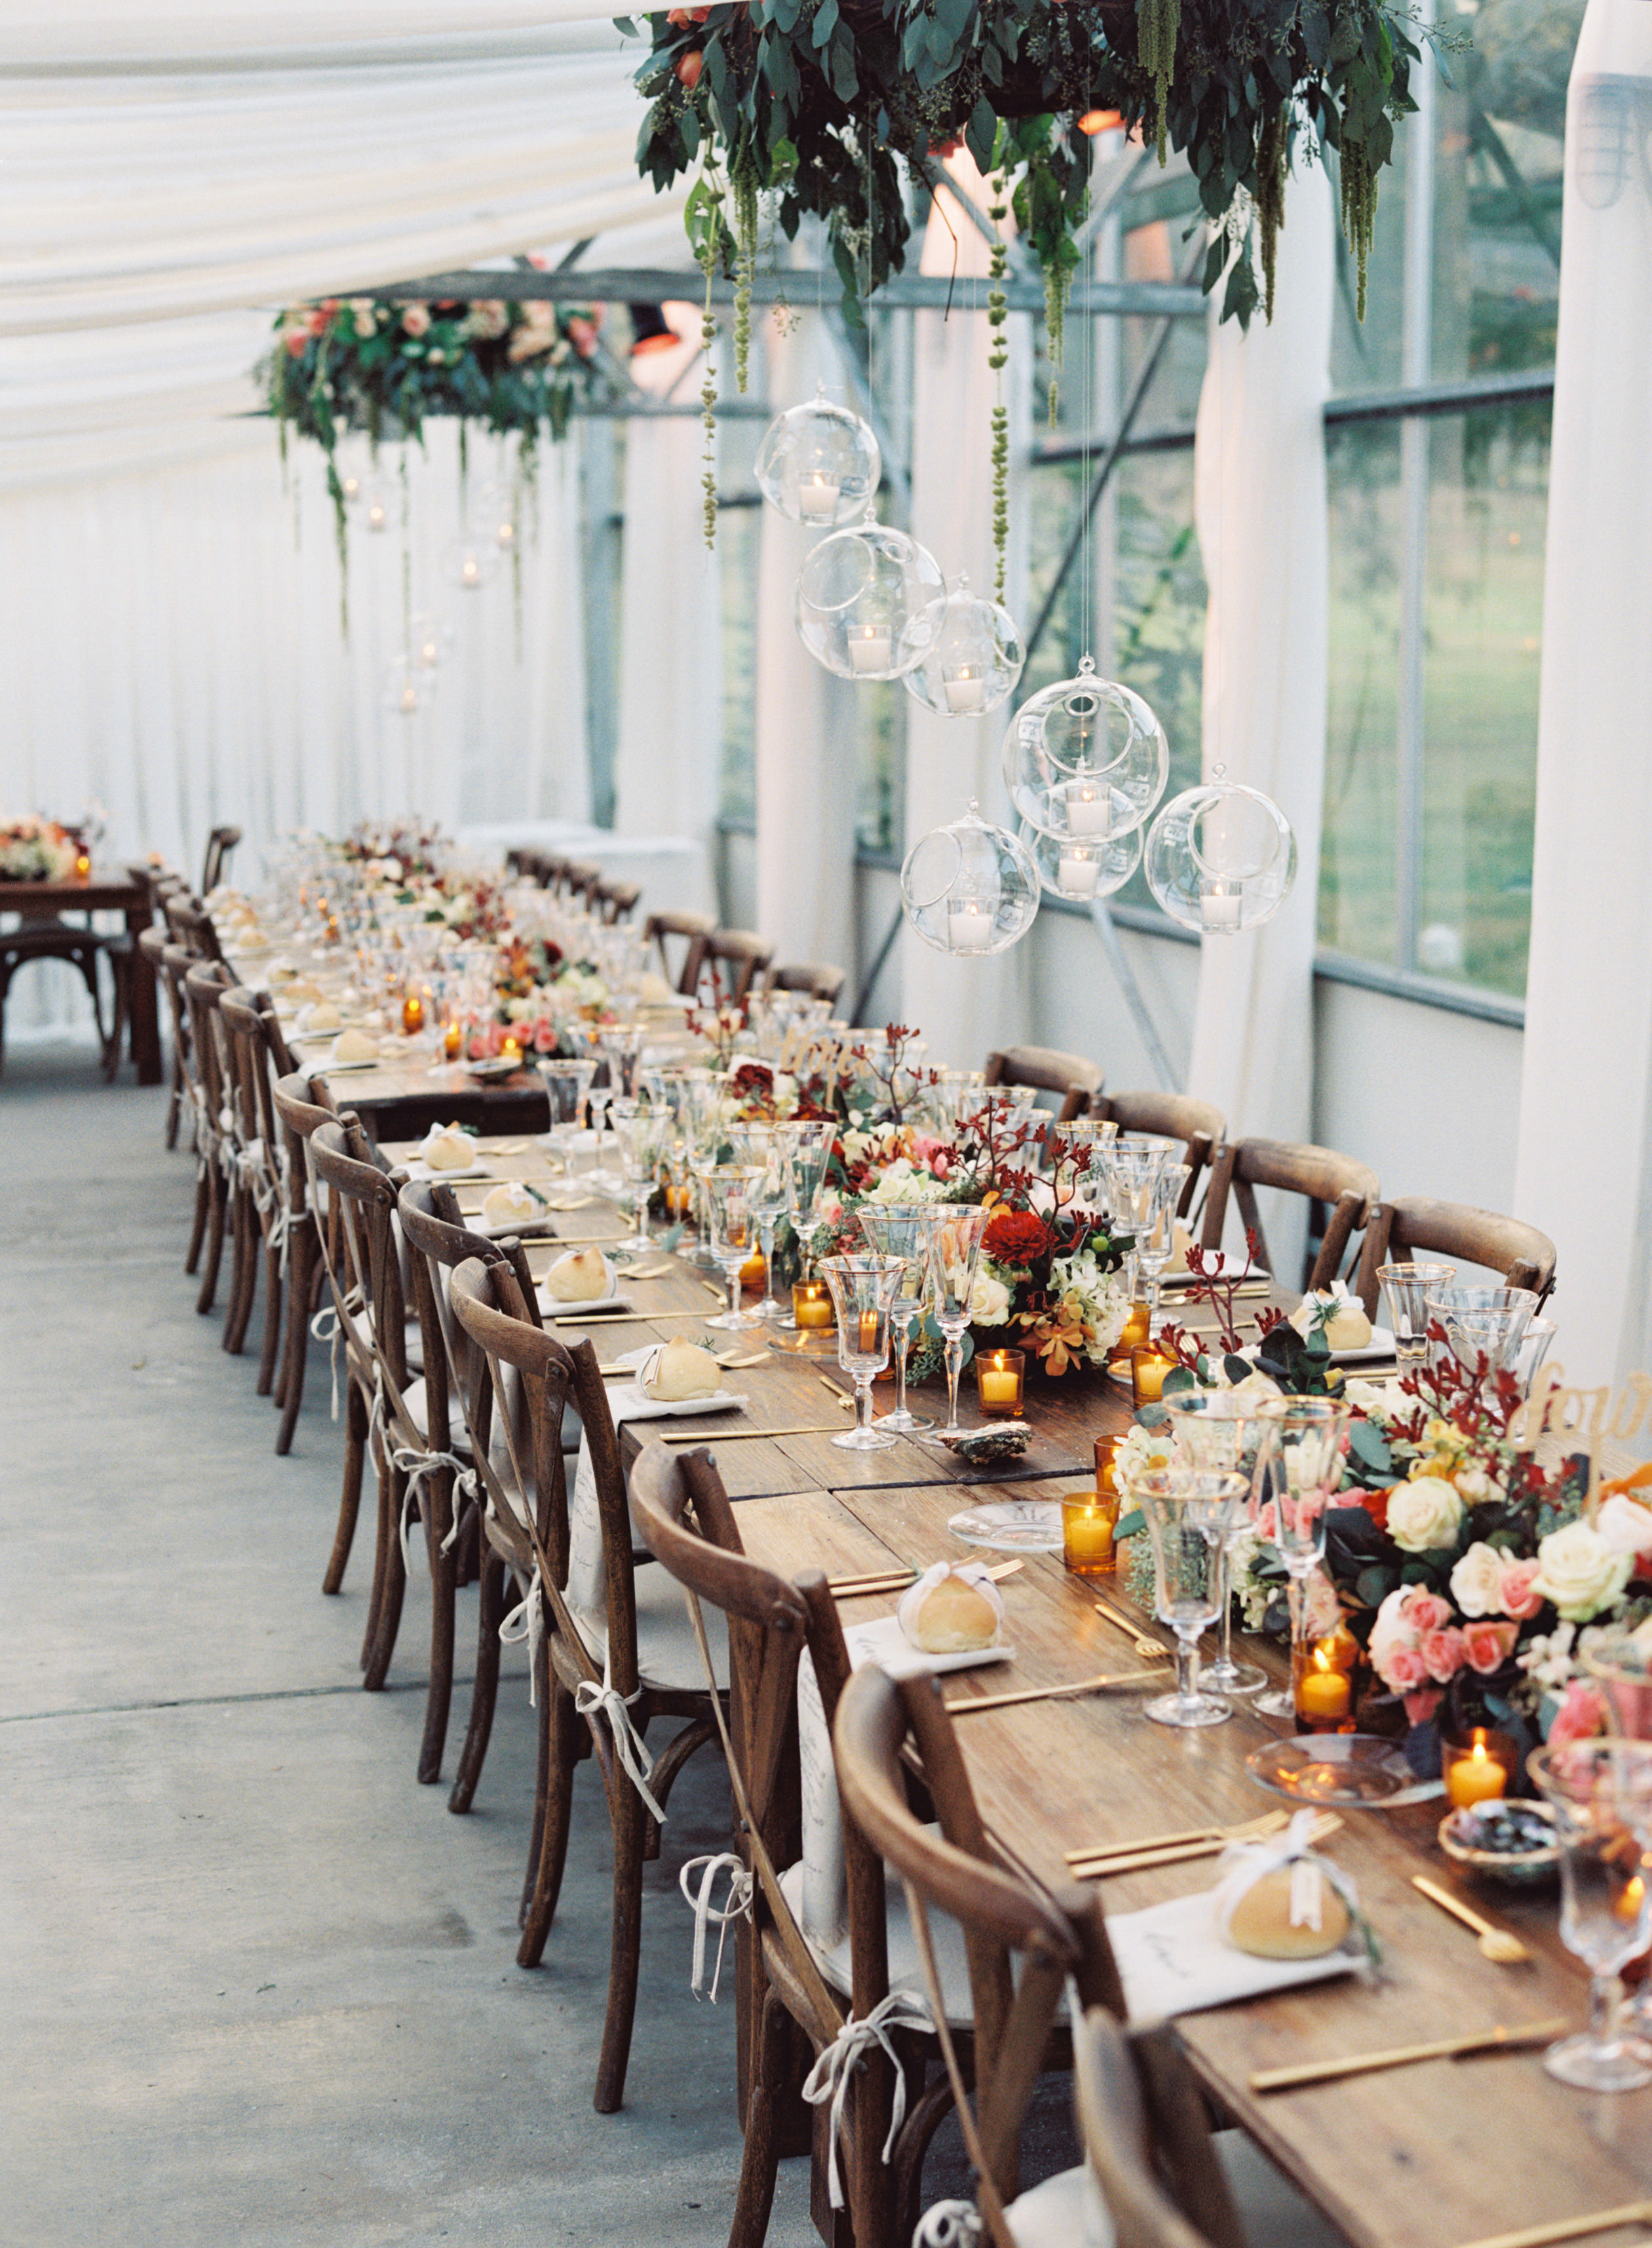 30 of Our Most Pinned Fall Weddings - https://ruffledblog.com/30-of-our-most-pinned-fall-weddings